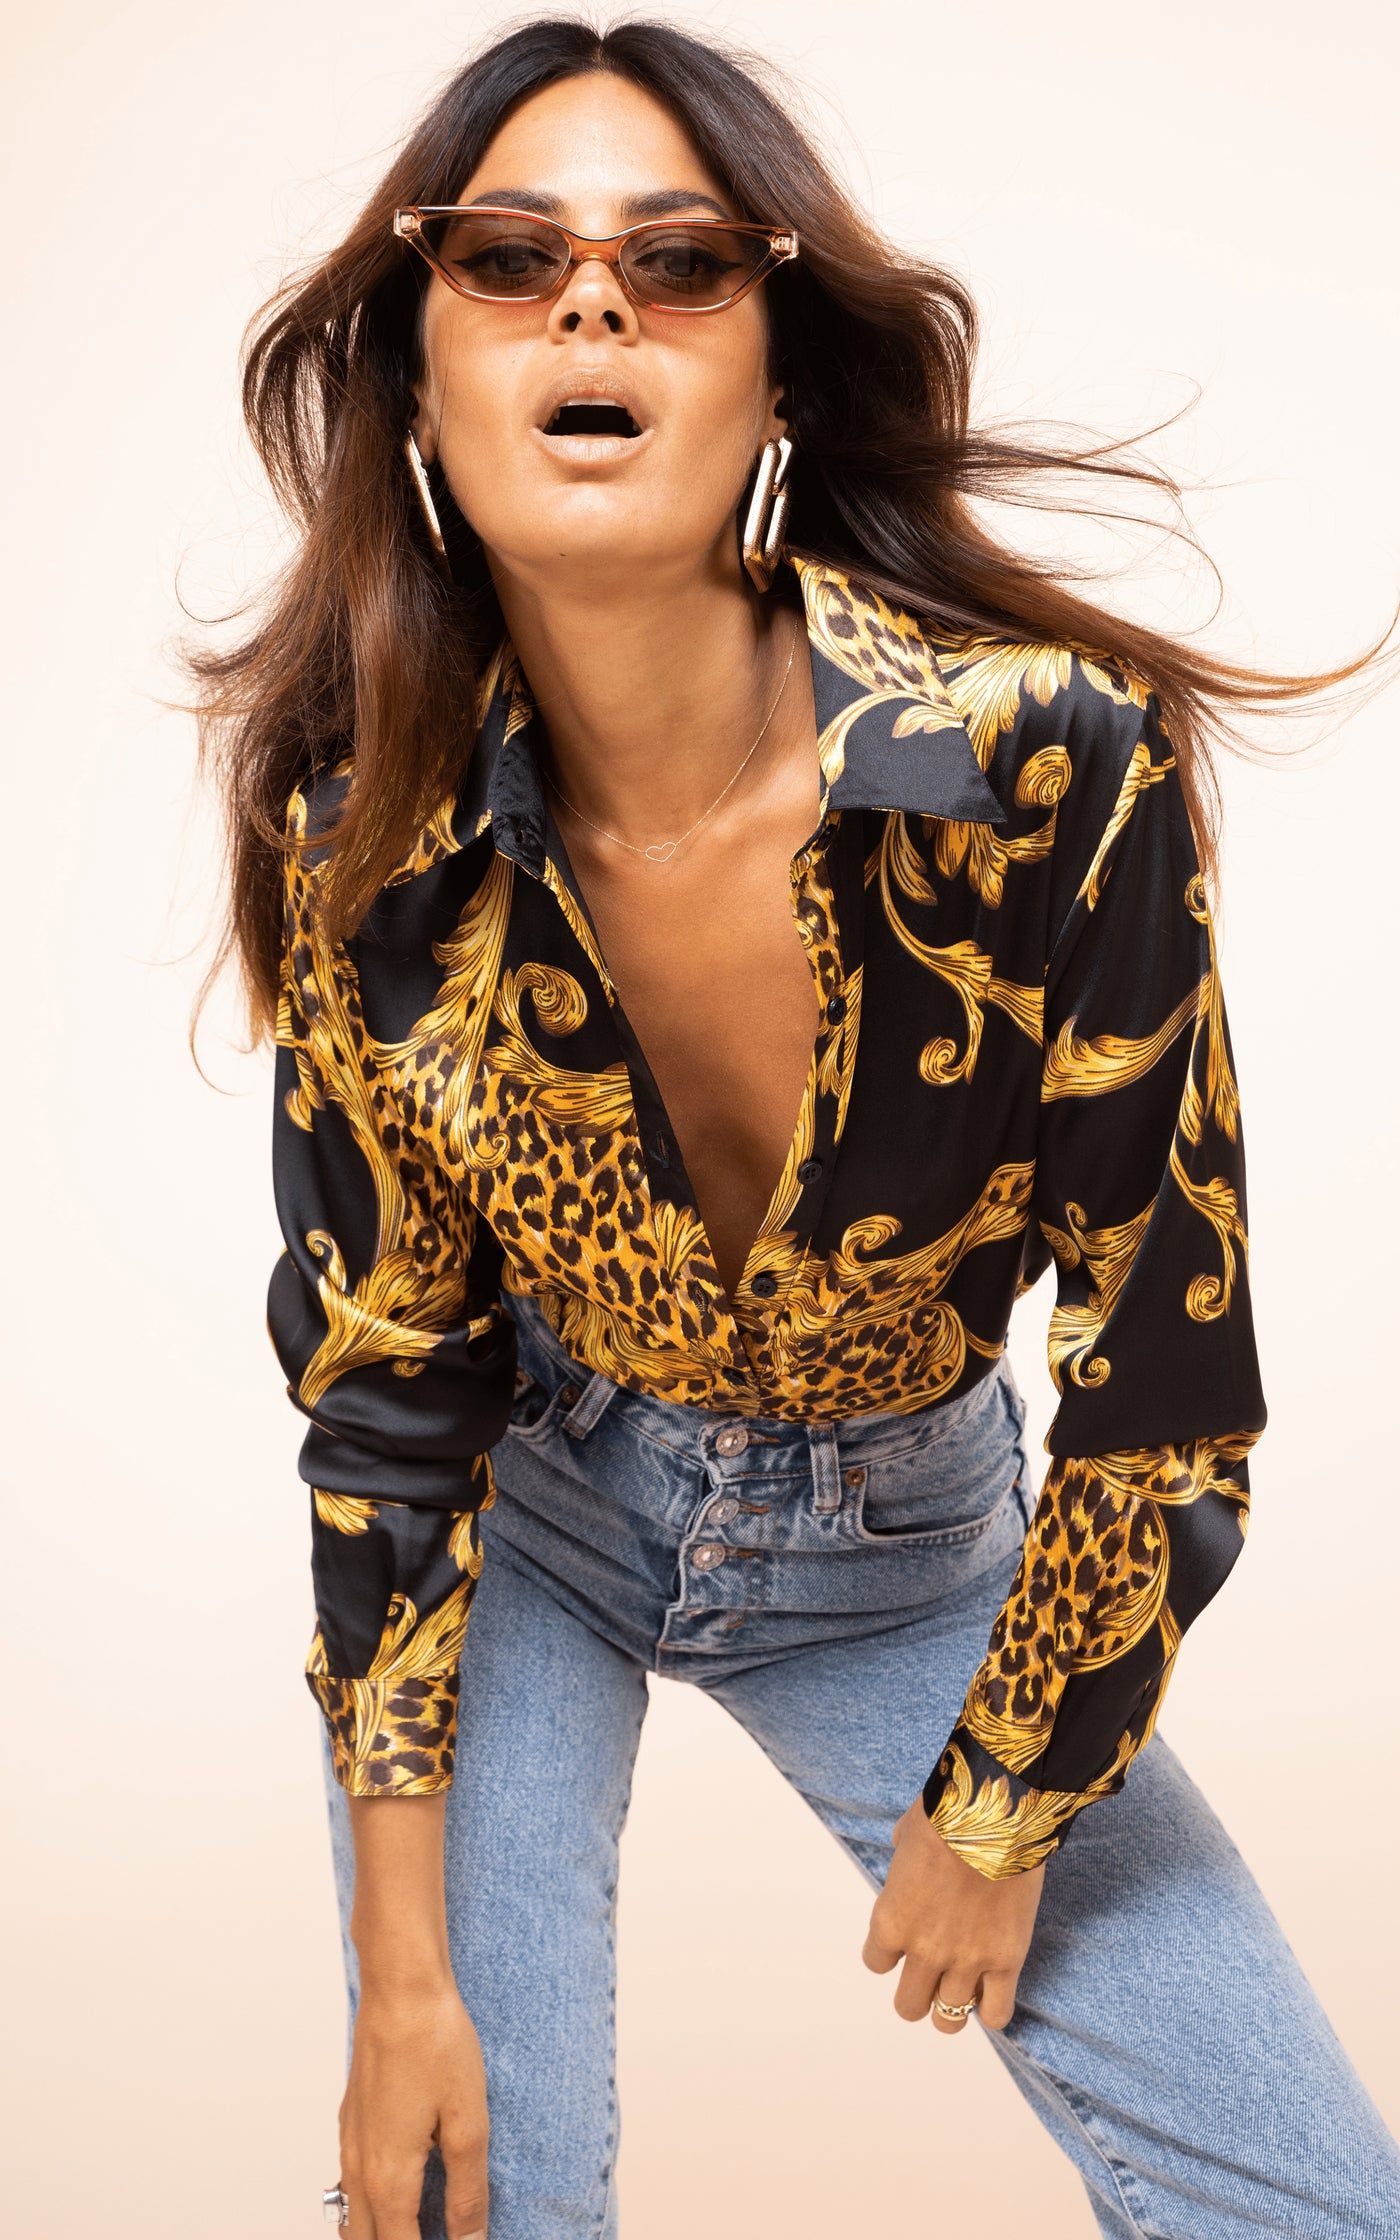 Dancing Leopard model leans forward wearing sunglasses and Nevada Shirt in baroque print